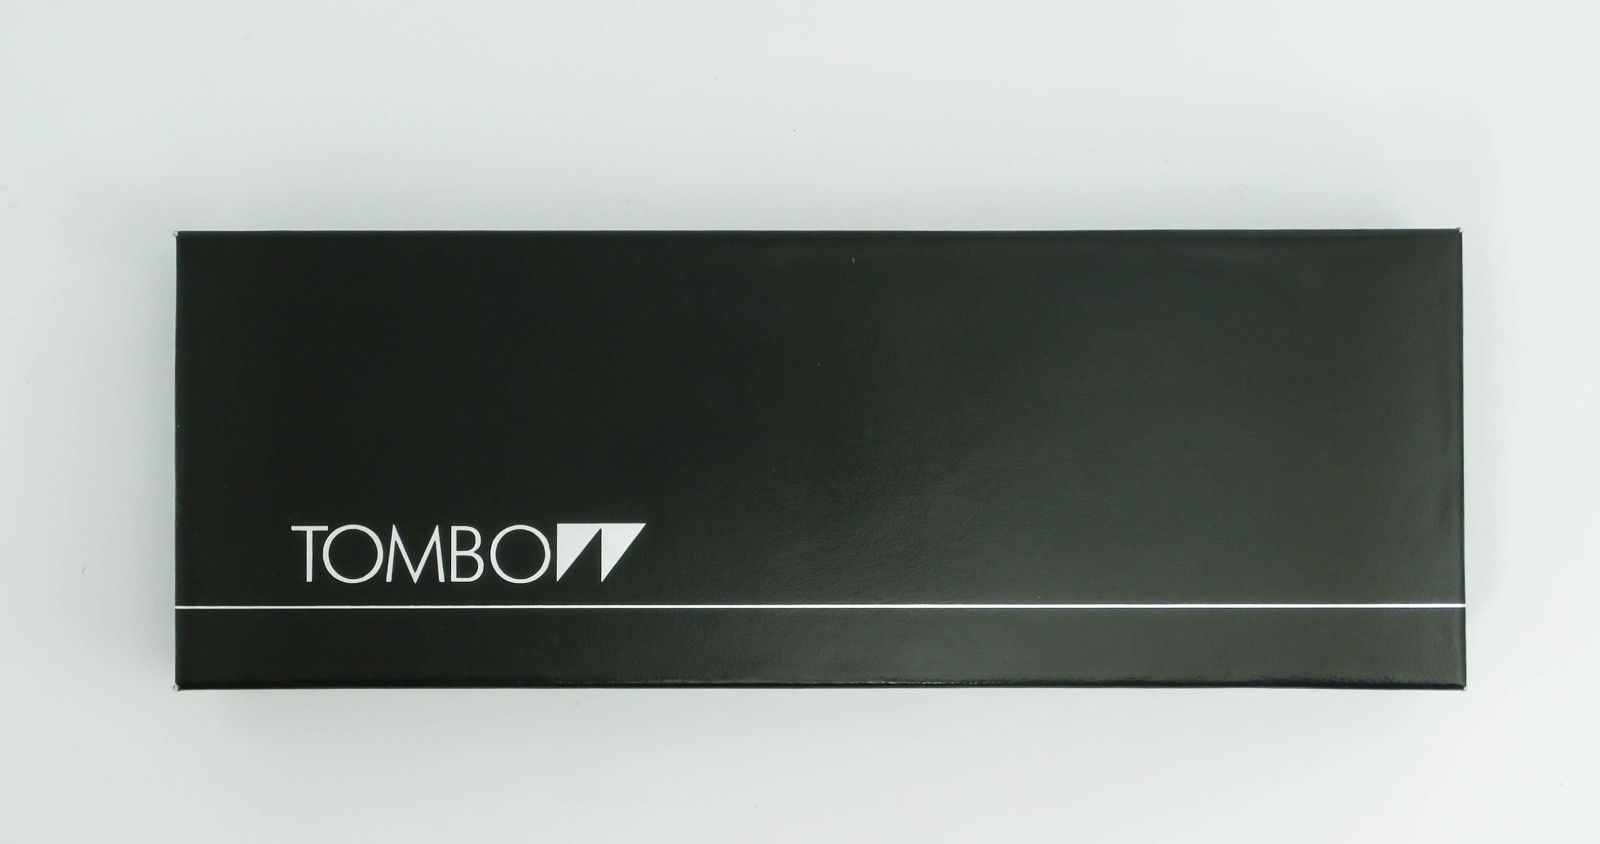 Tombow Zoom 505bw Rollerball Pen + New Genuine Refill + Gift Box, Free Shipping!